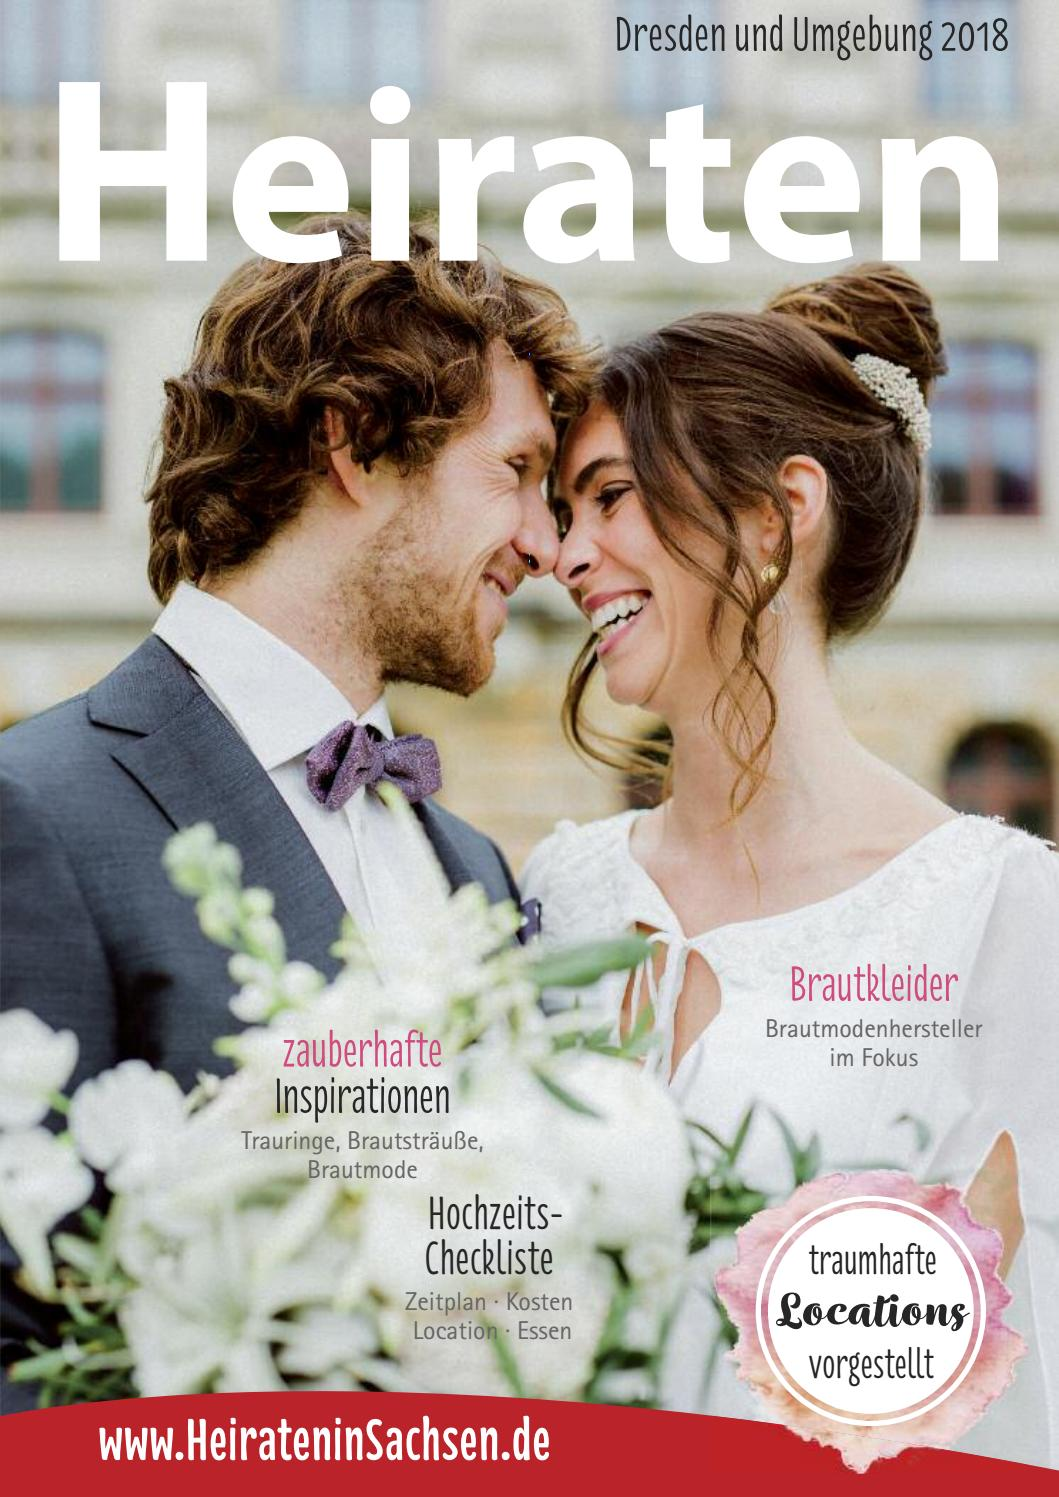 Heiraten In Dresden Und Umgebung 2018 By Magazin Heiraten